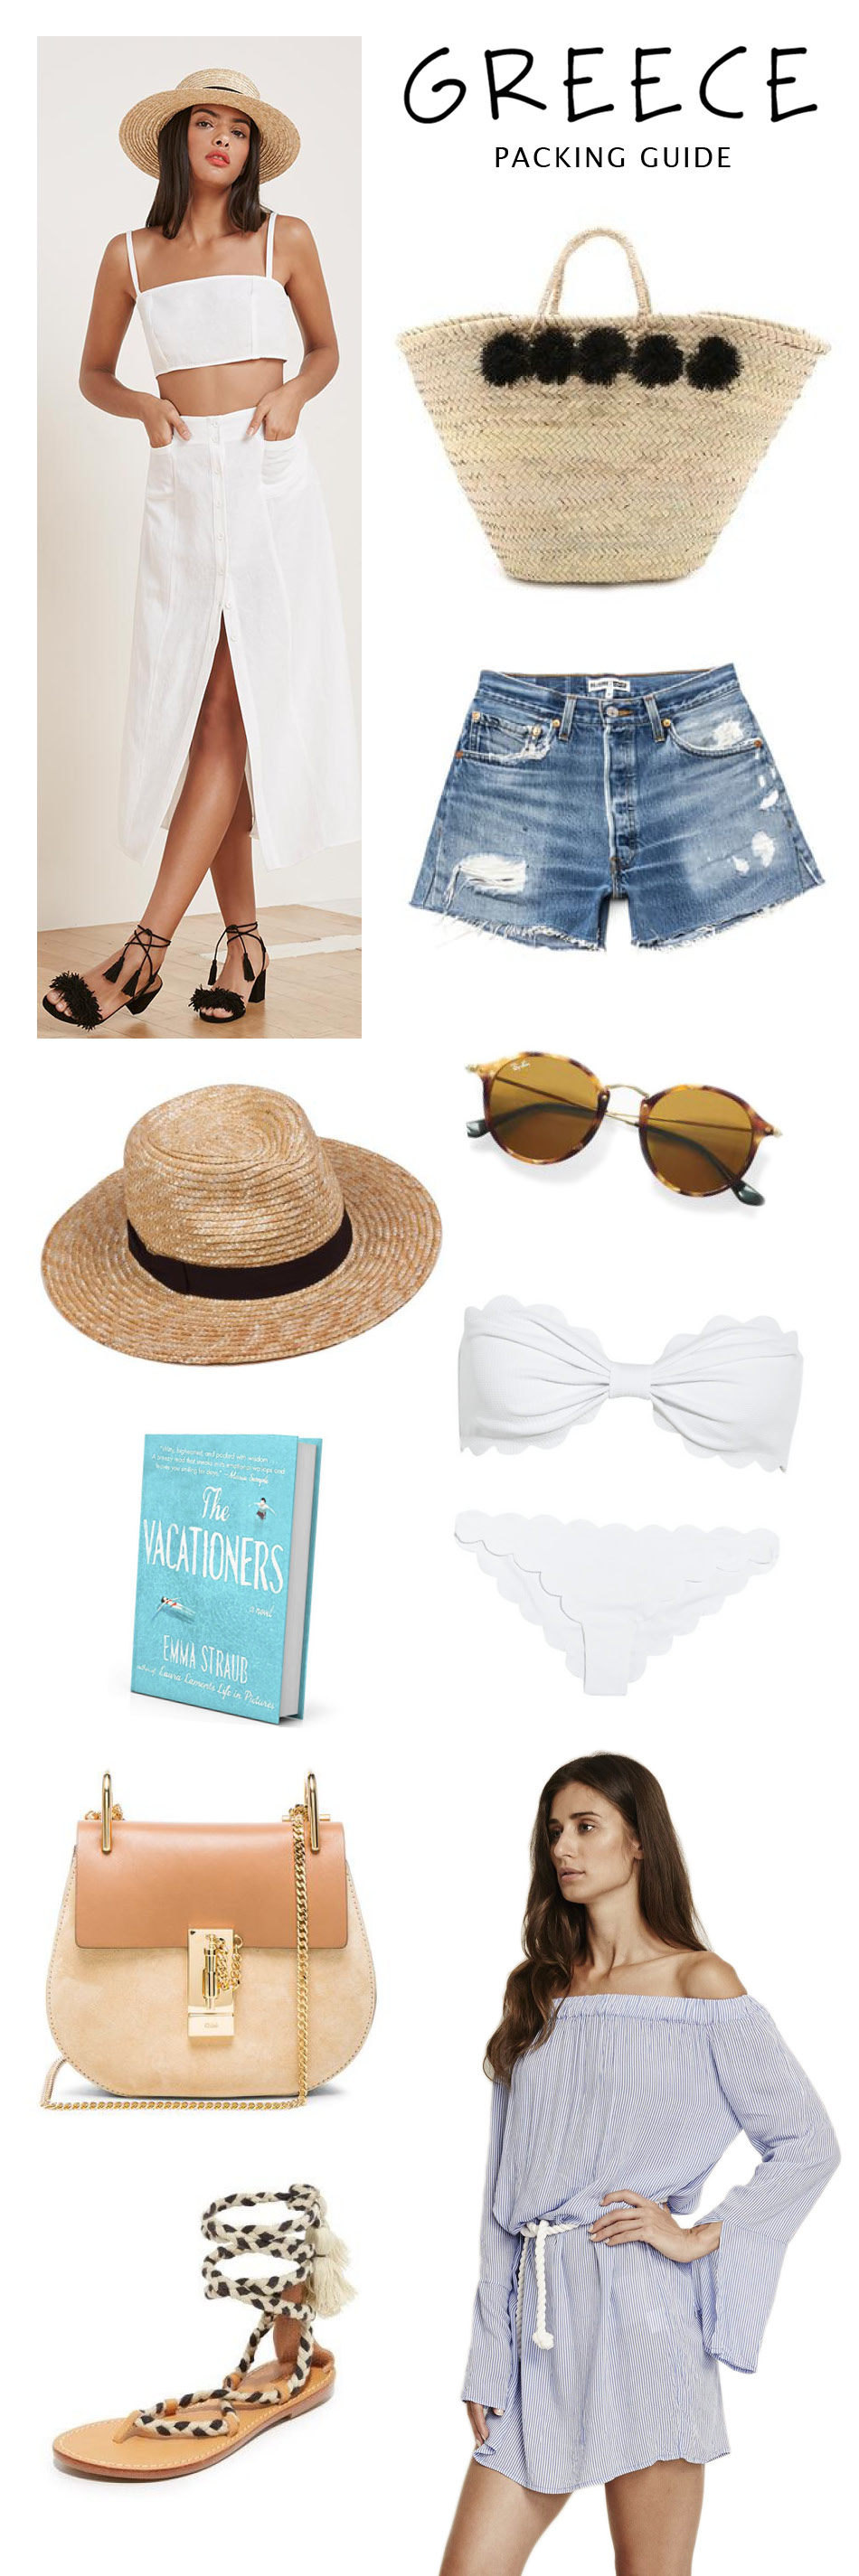 HANNAH SHELBY: GREECE PACKING GUIDE